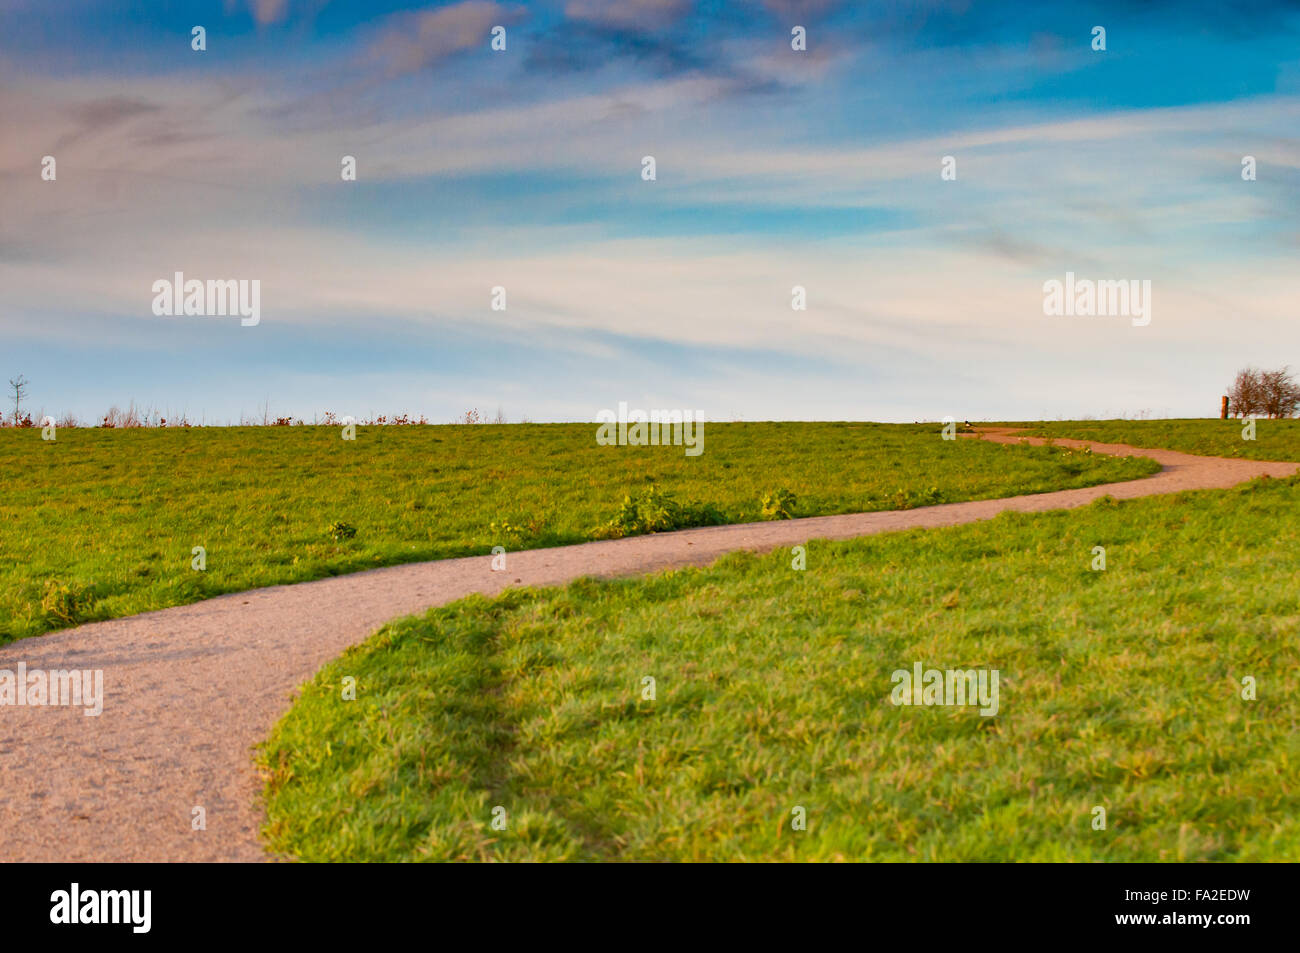 Winding path through a grassy field in a nature reserve stock photo winding path through a grassy field in a nature reserve voltagebd Images